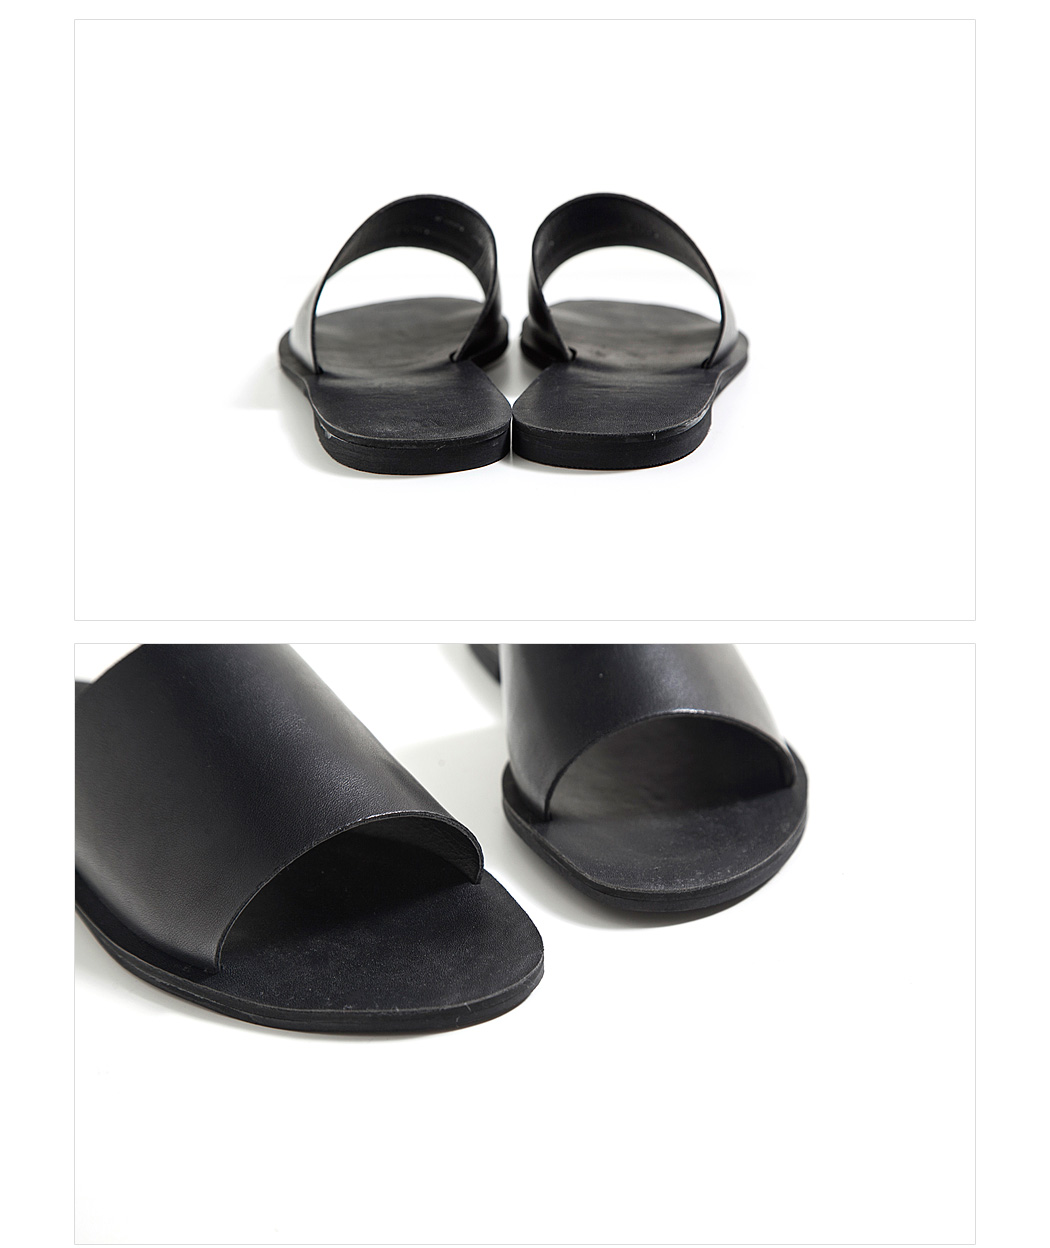 Wide Uppers Minimalist Slippers|